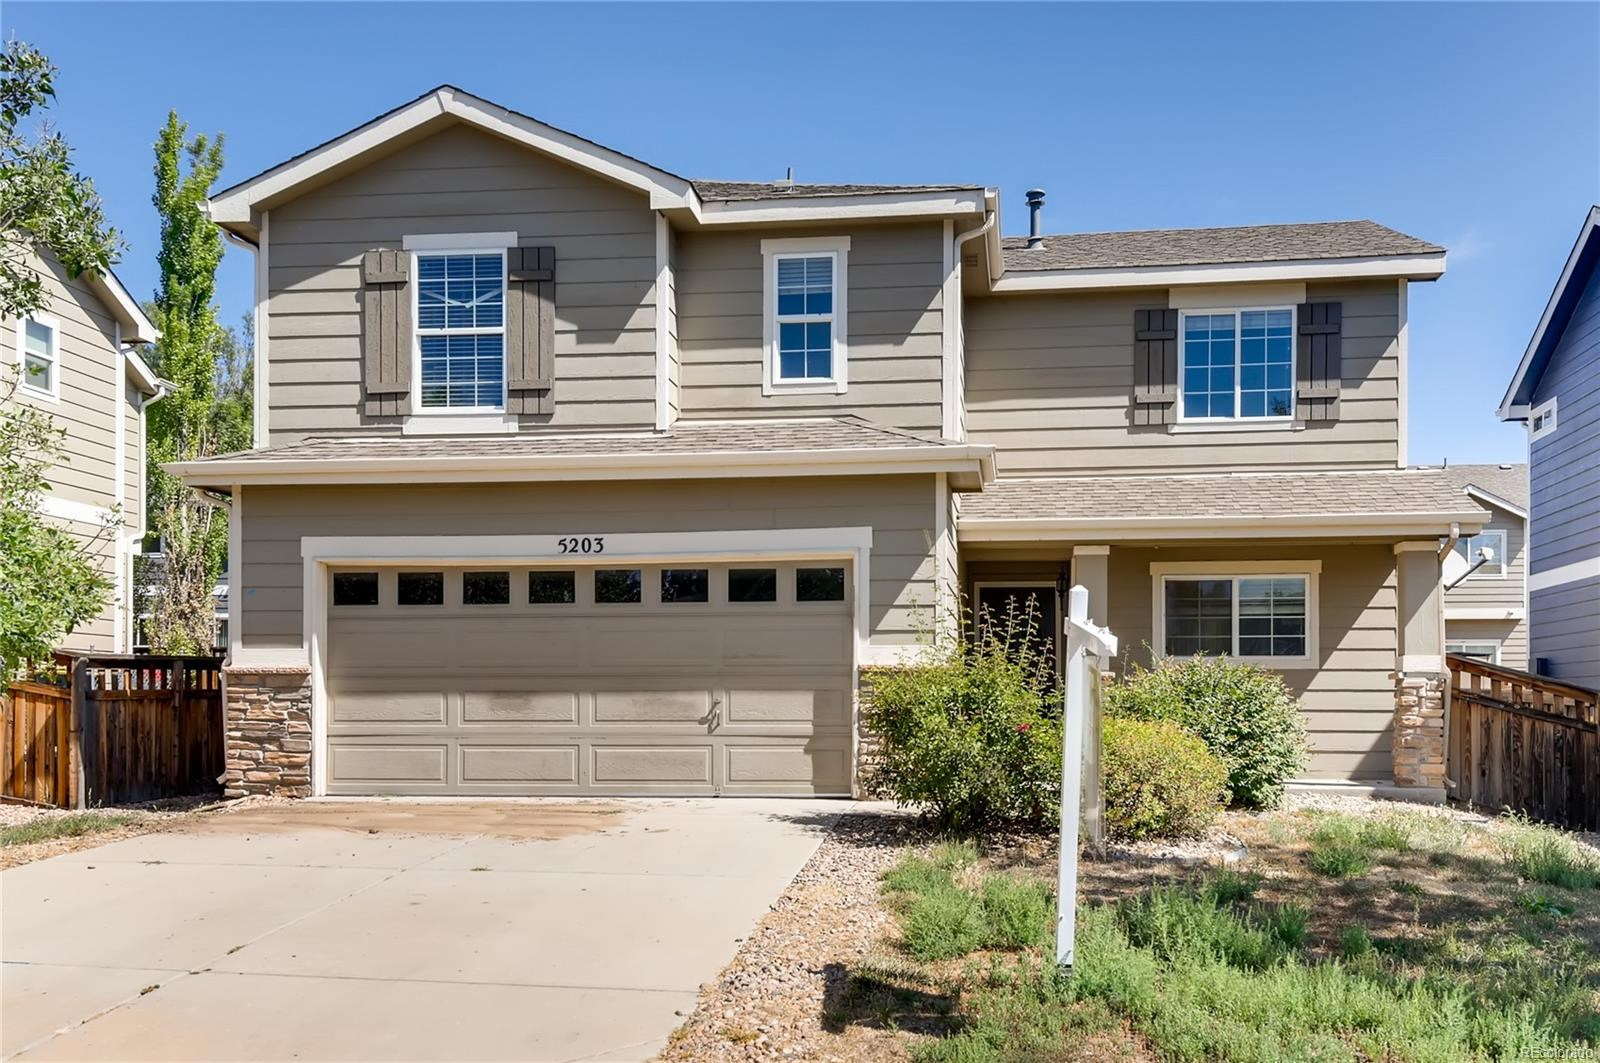 MLS# 6080809 - 1 - 5203 Pelican Street, Brighton, CO 80601